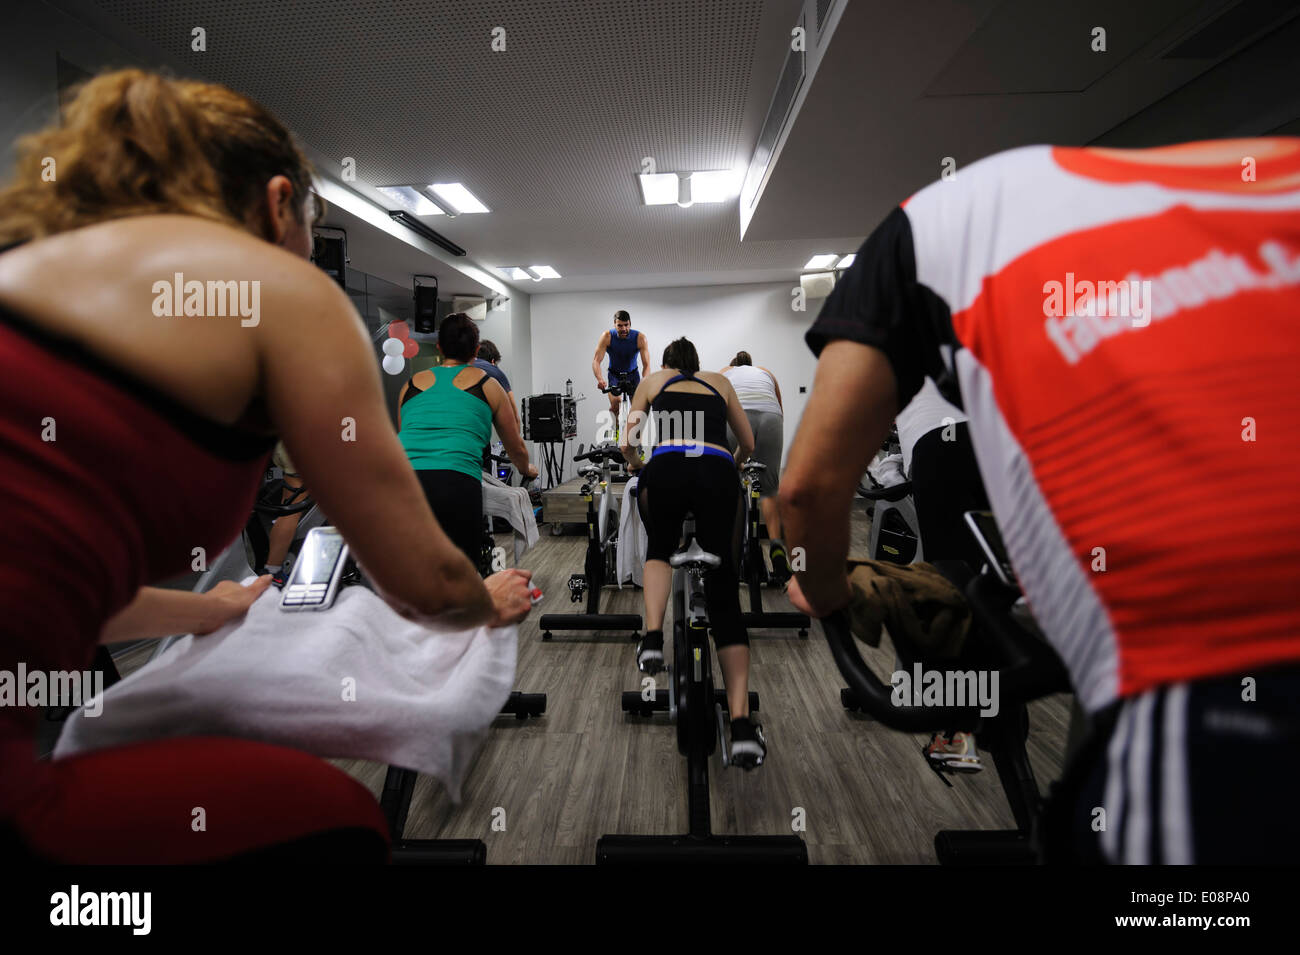 View from the back of people riding stationary bicycle during a spinning class at the gym - Stock Image